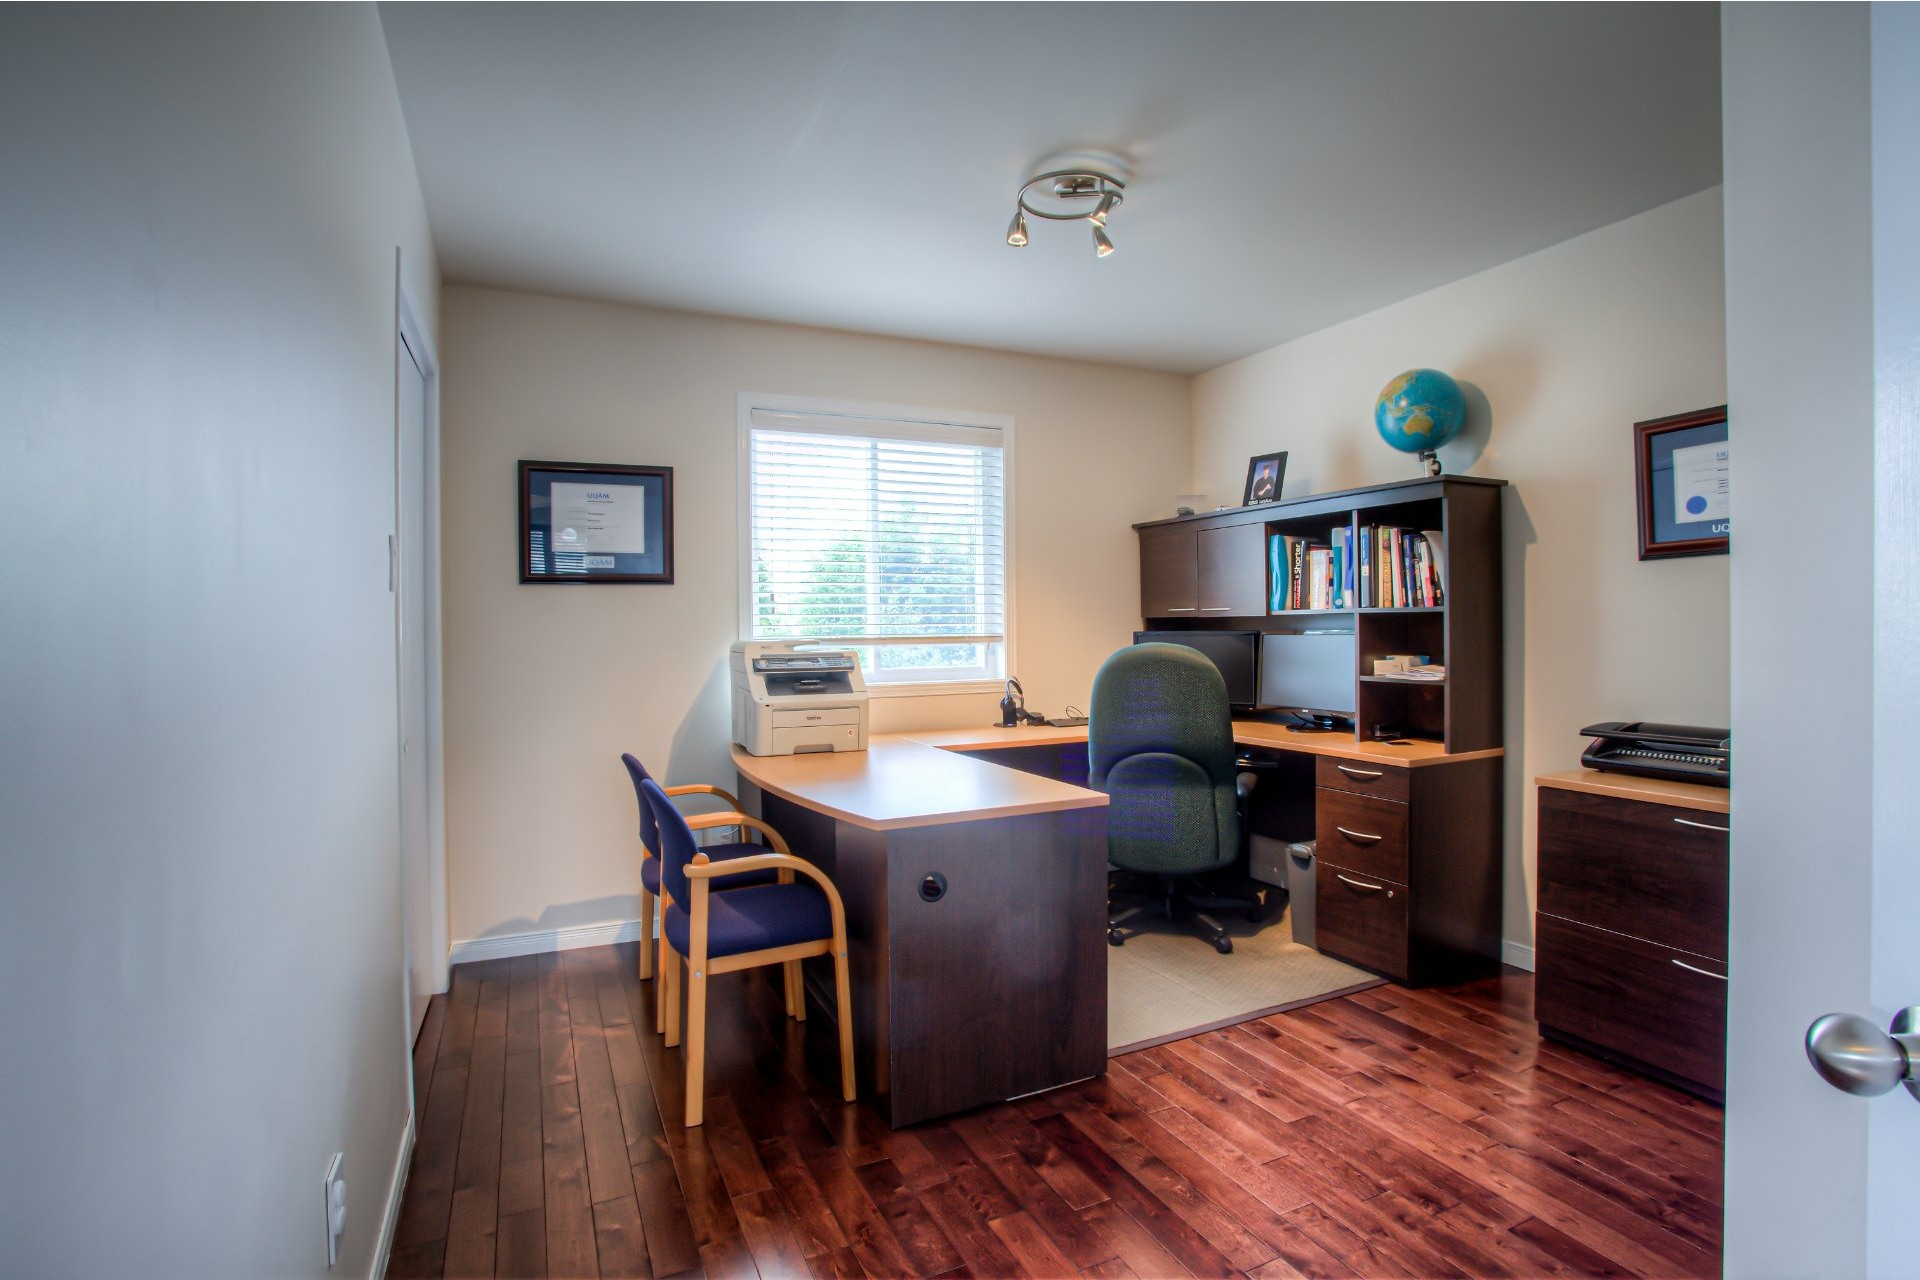 image 14 - House For sale Vaudreuil-Dorion - 9 rooms